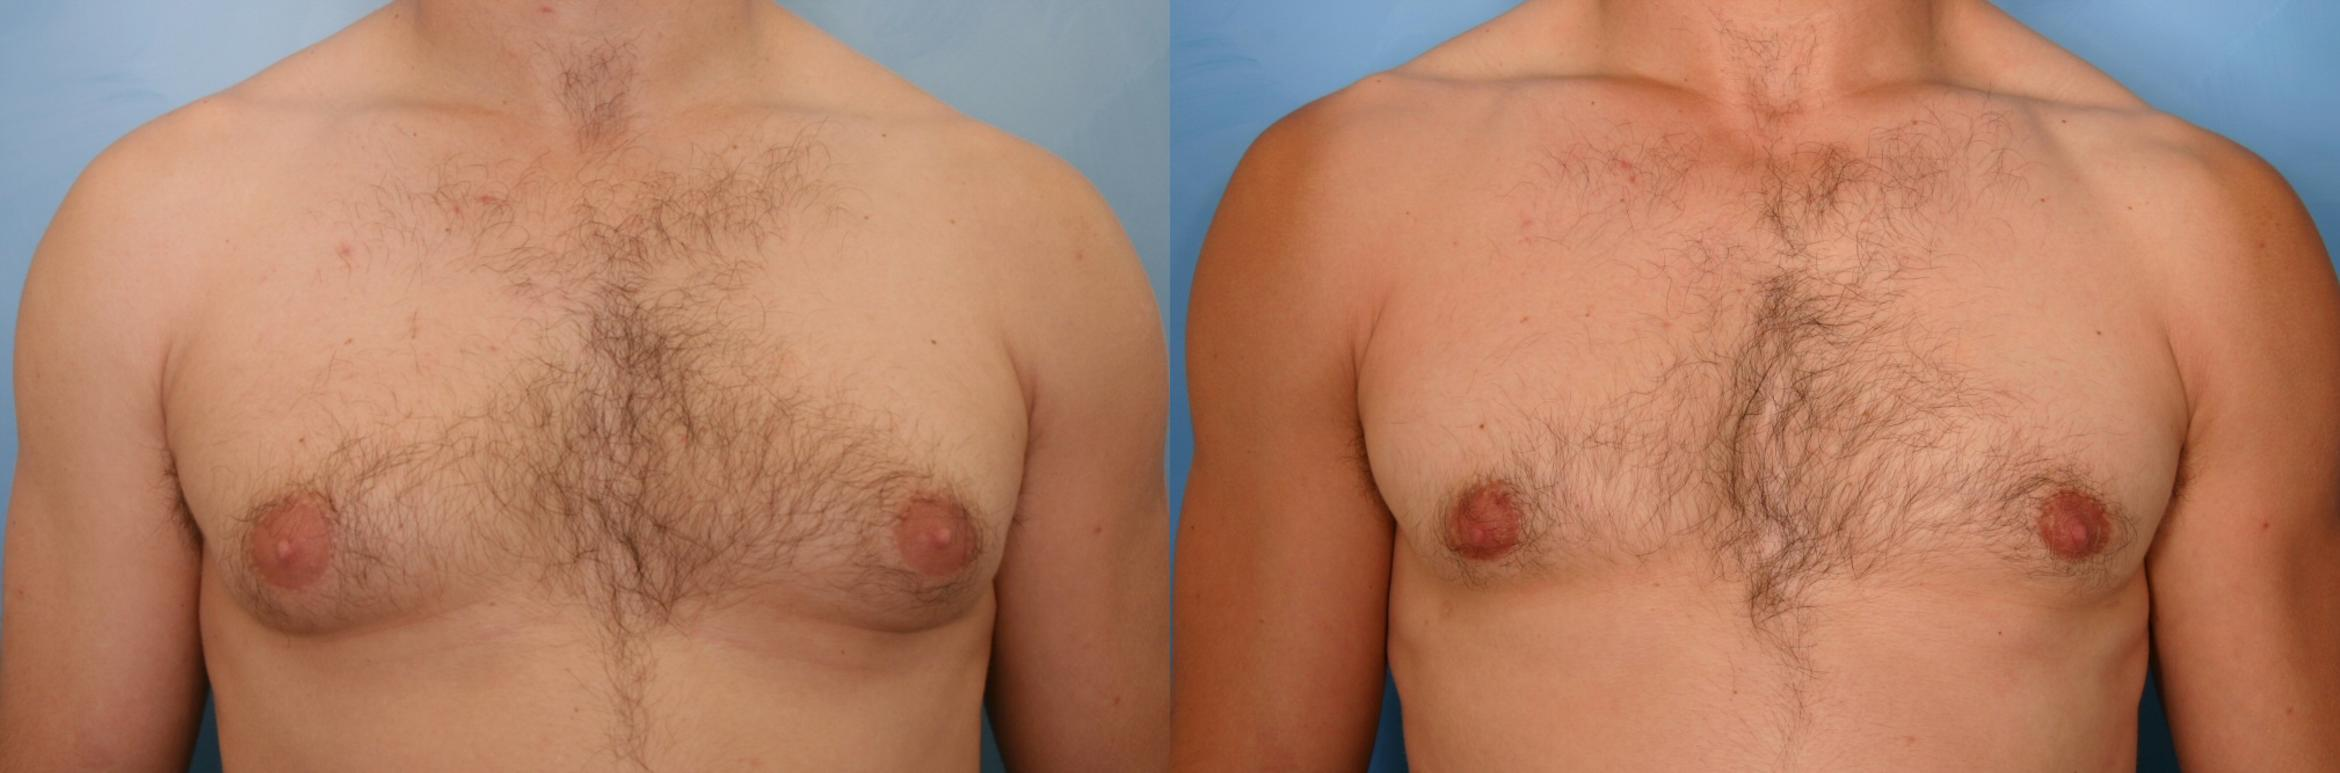 Male Breast Reduction Case 44 Before & After View #1 | Naples, FL | Kent V. Hasen, M.D.